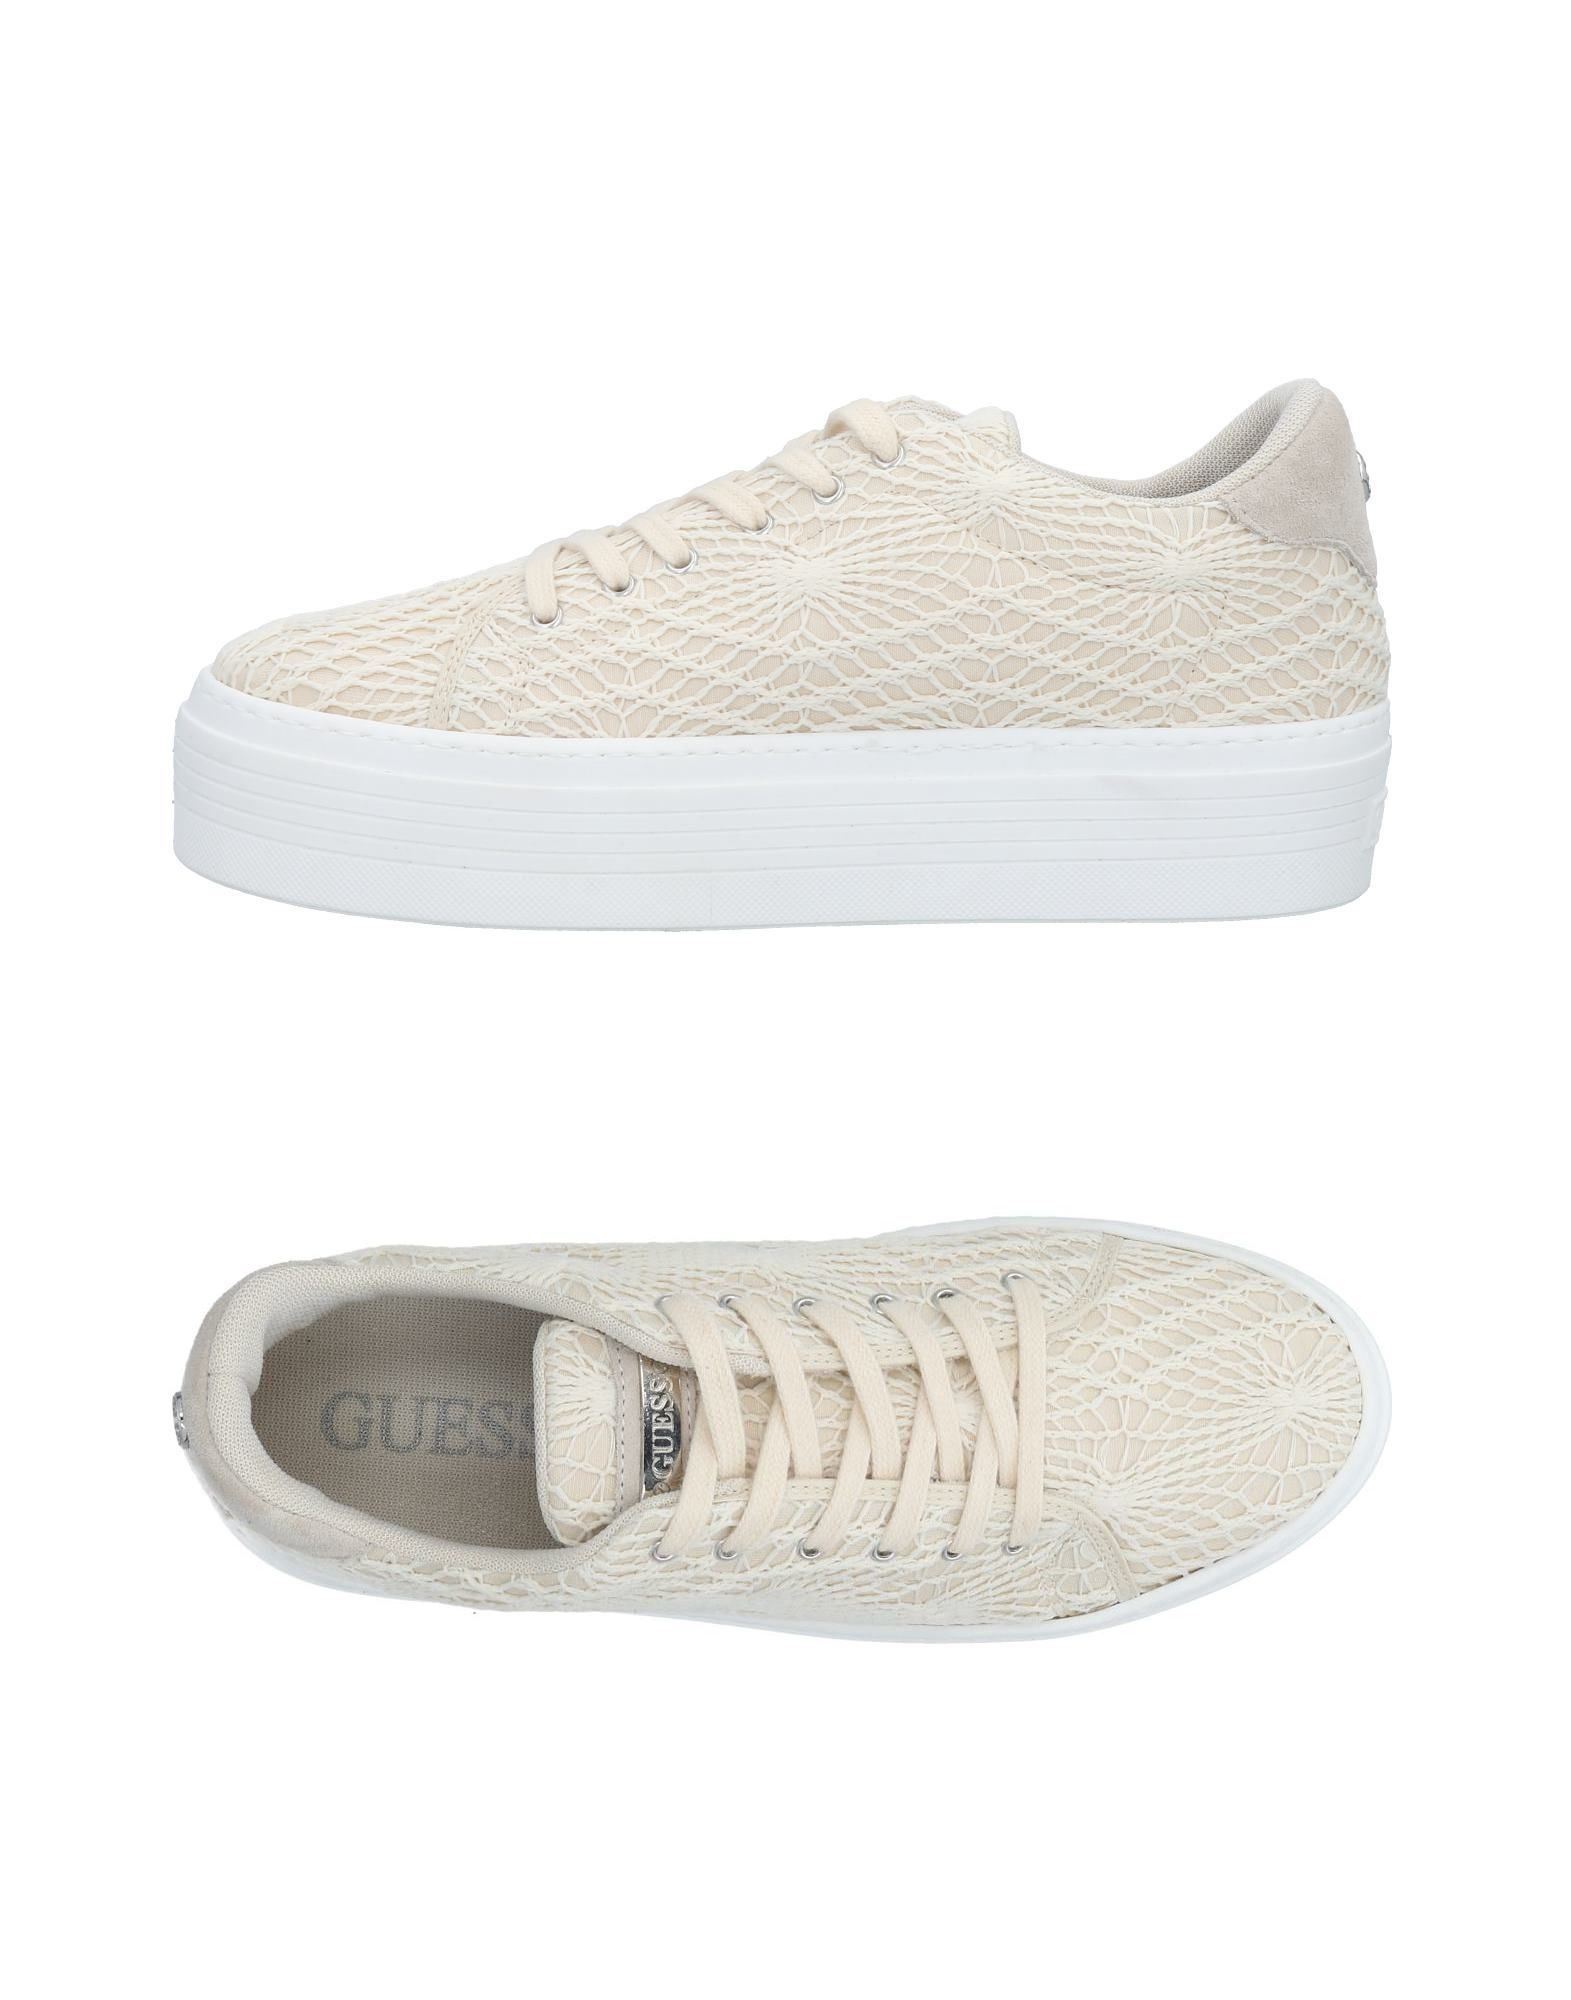 Moda Sneakers Guess Donna - 11493285WH